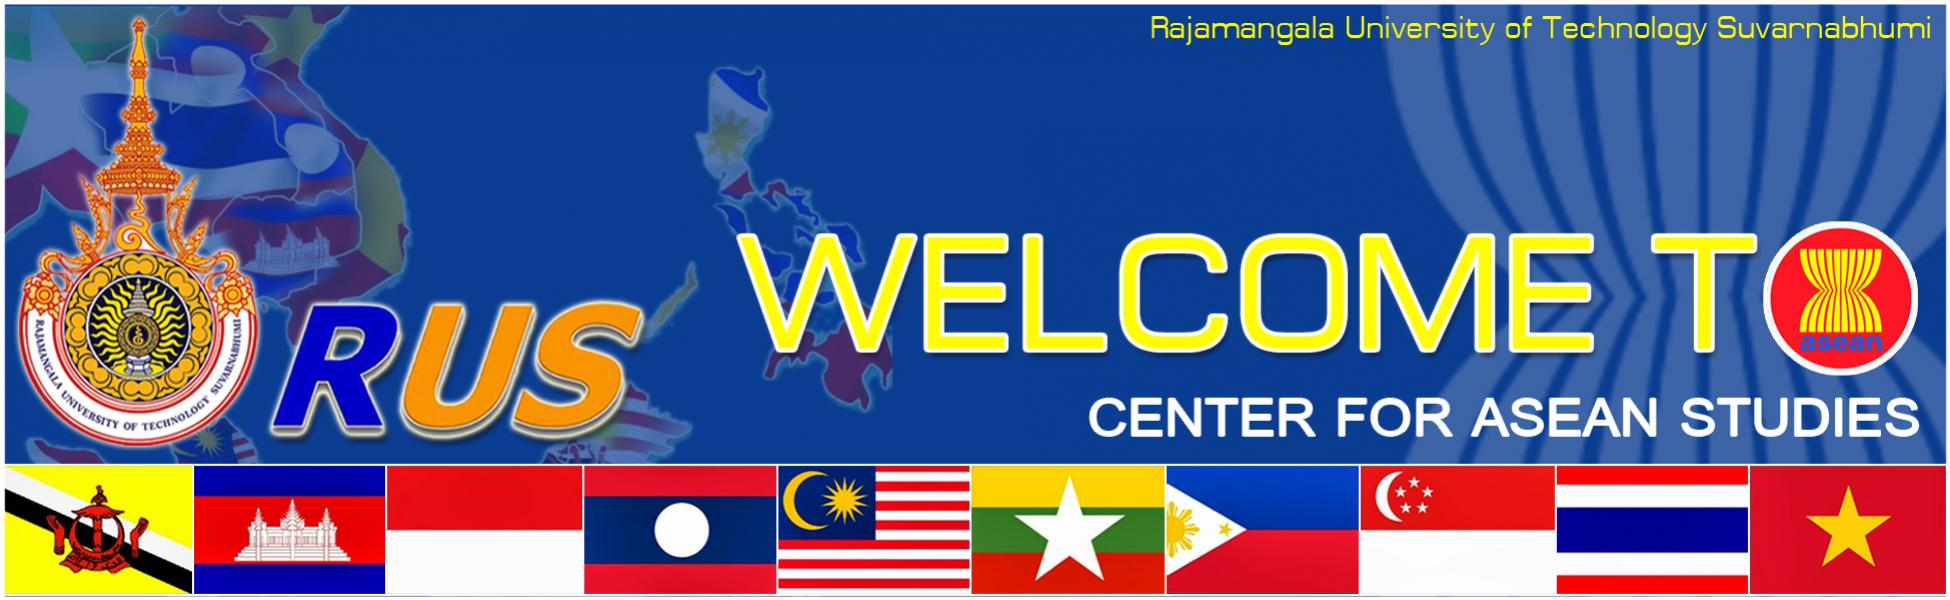 WELCOME TO CENTER FOR ASEAN RUS